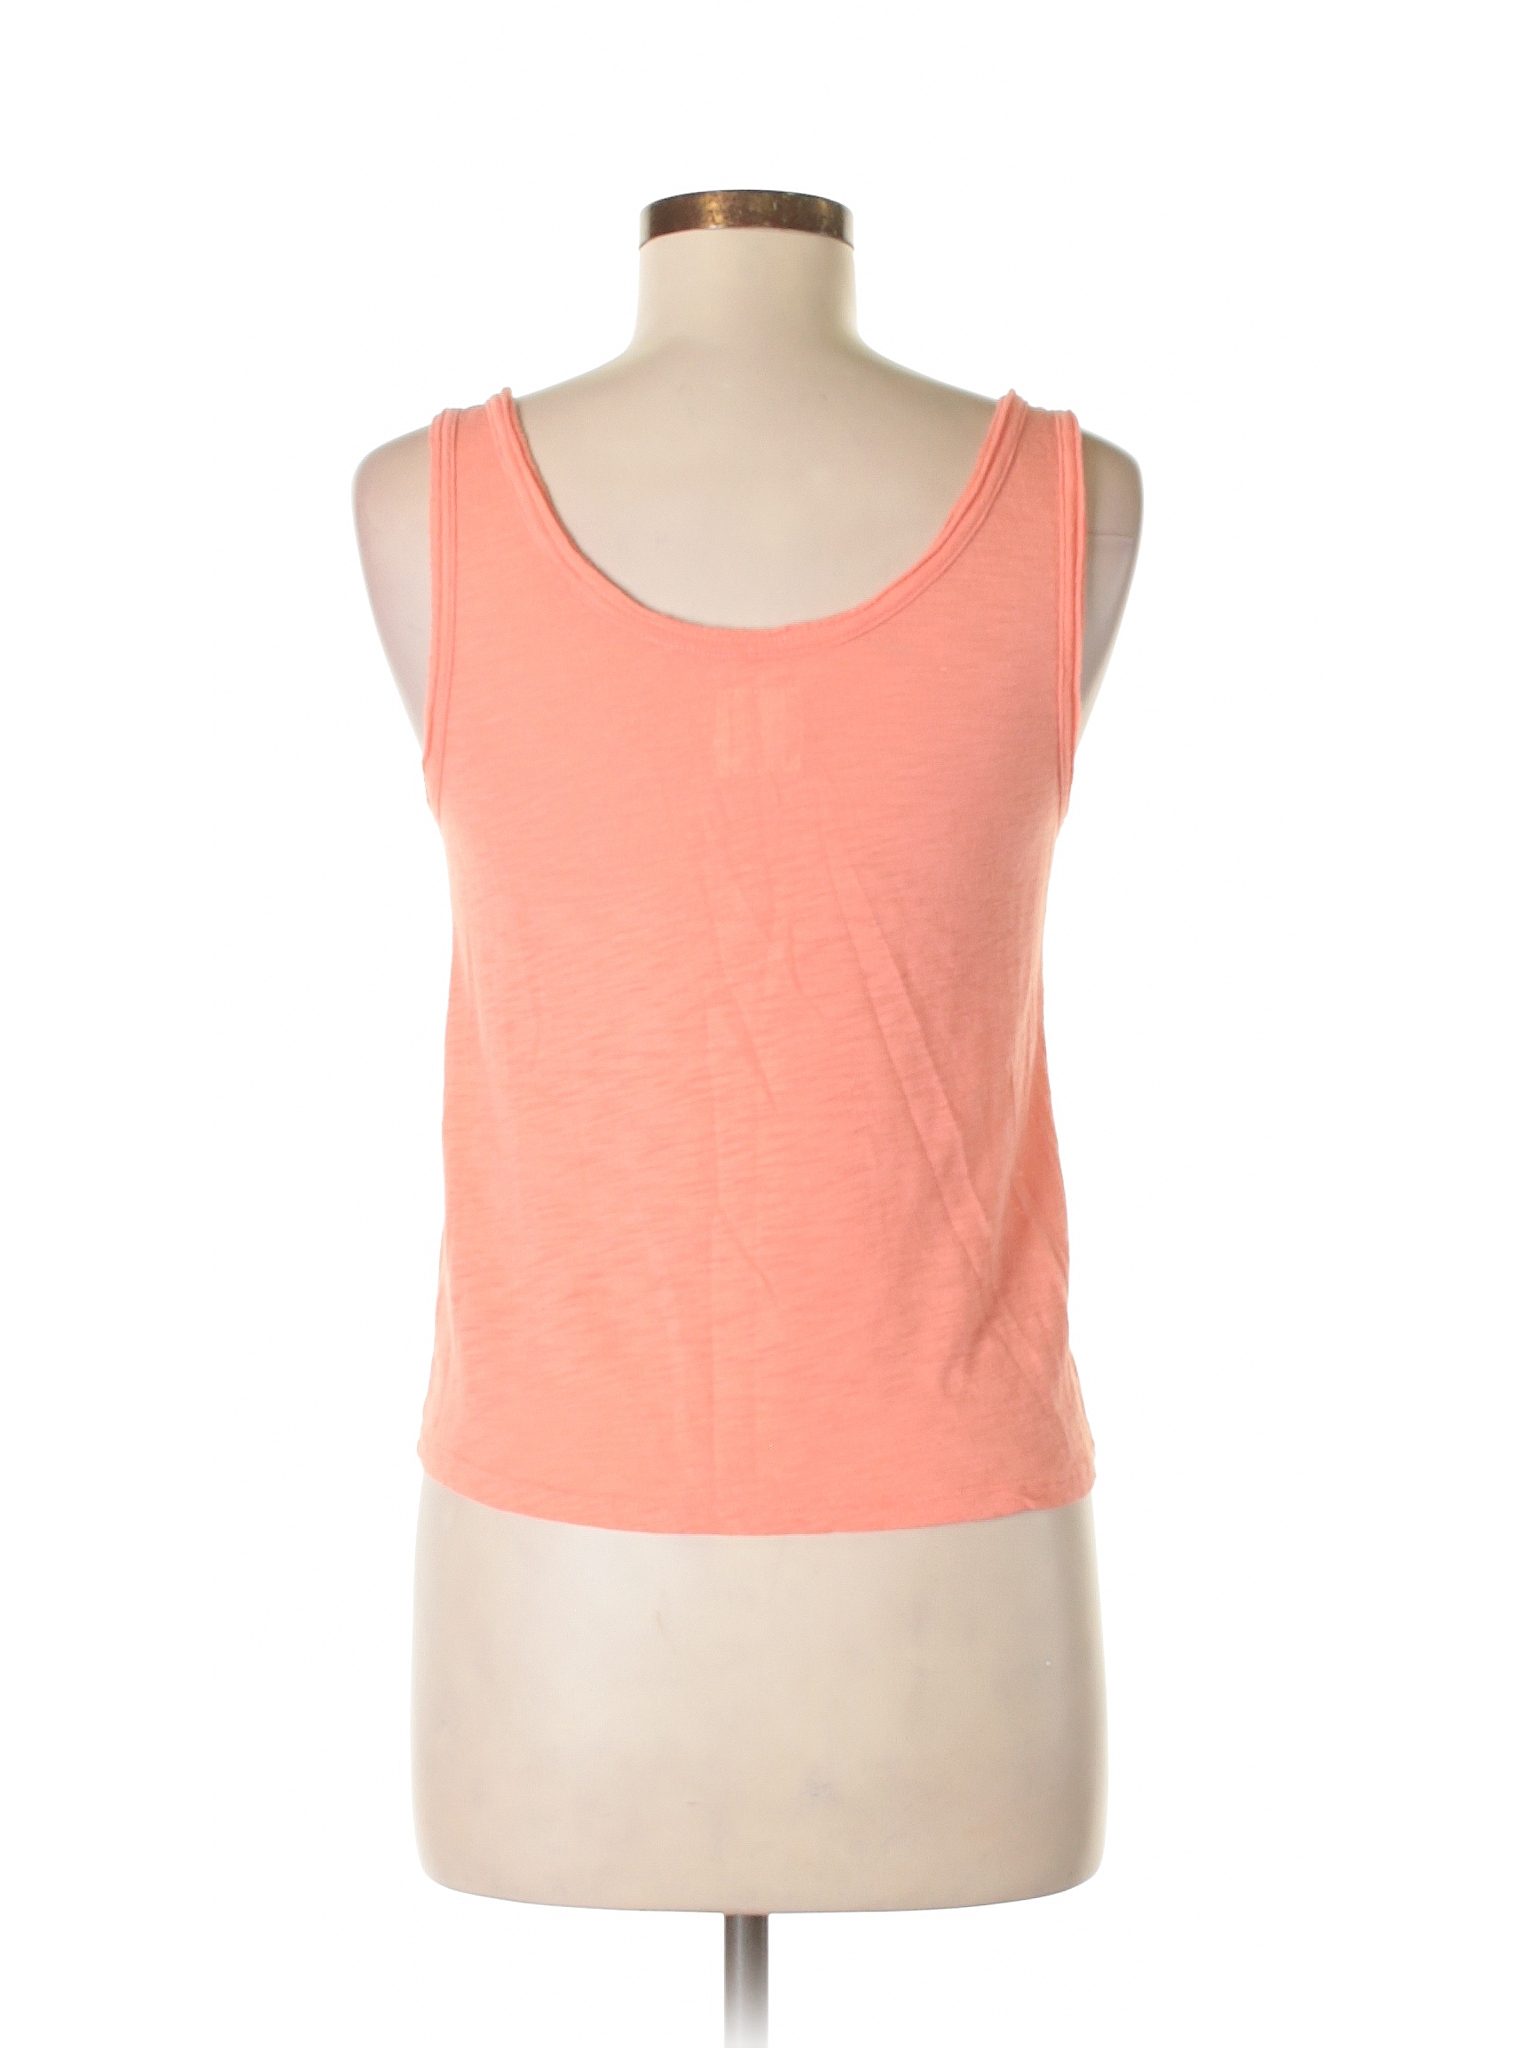 American Eagle Outfitters Tank Top Size 800 Coral Womens Tops